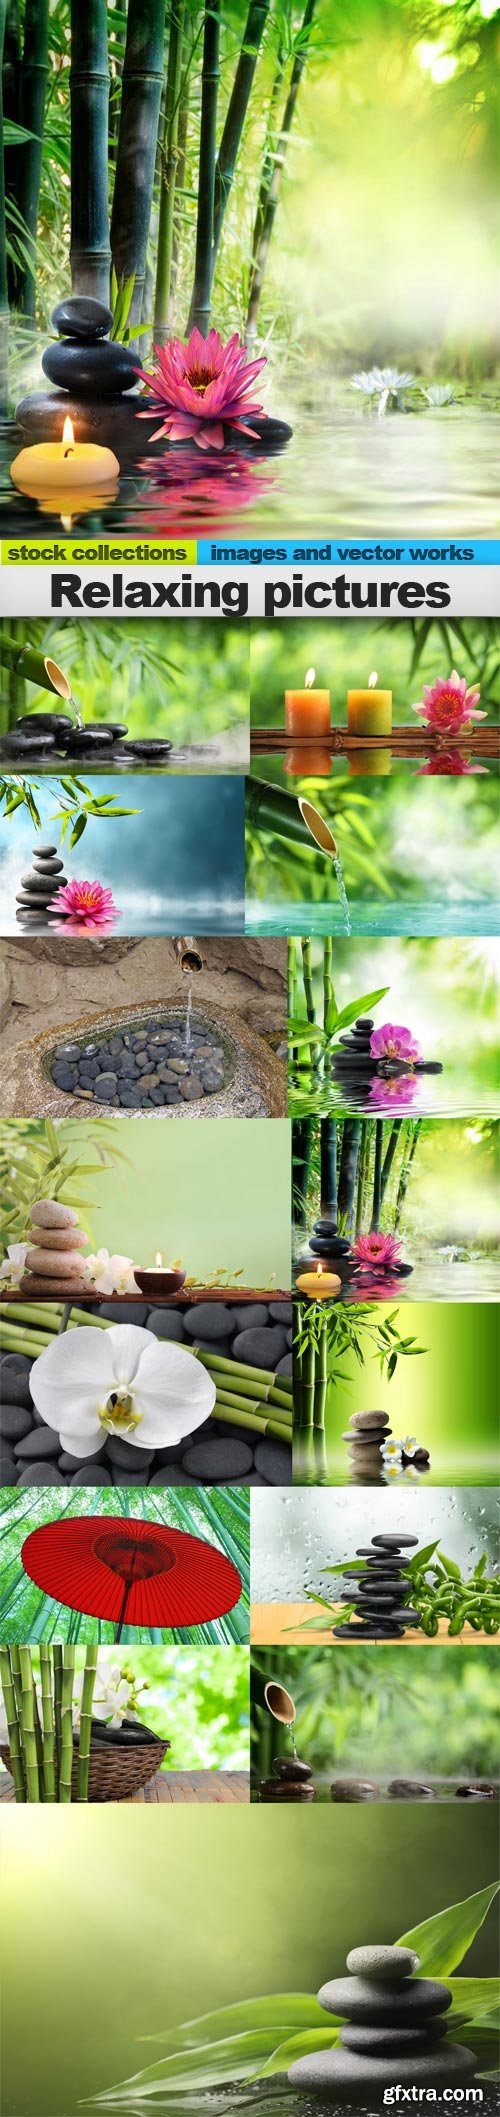 Relaxing pictures, 15 x UHQ JPEG